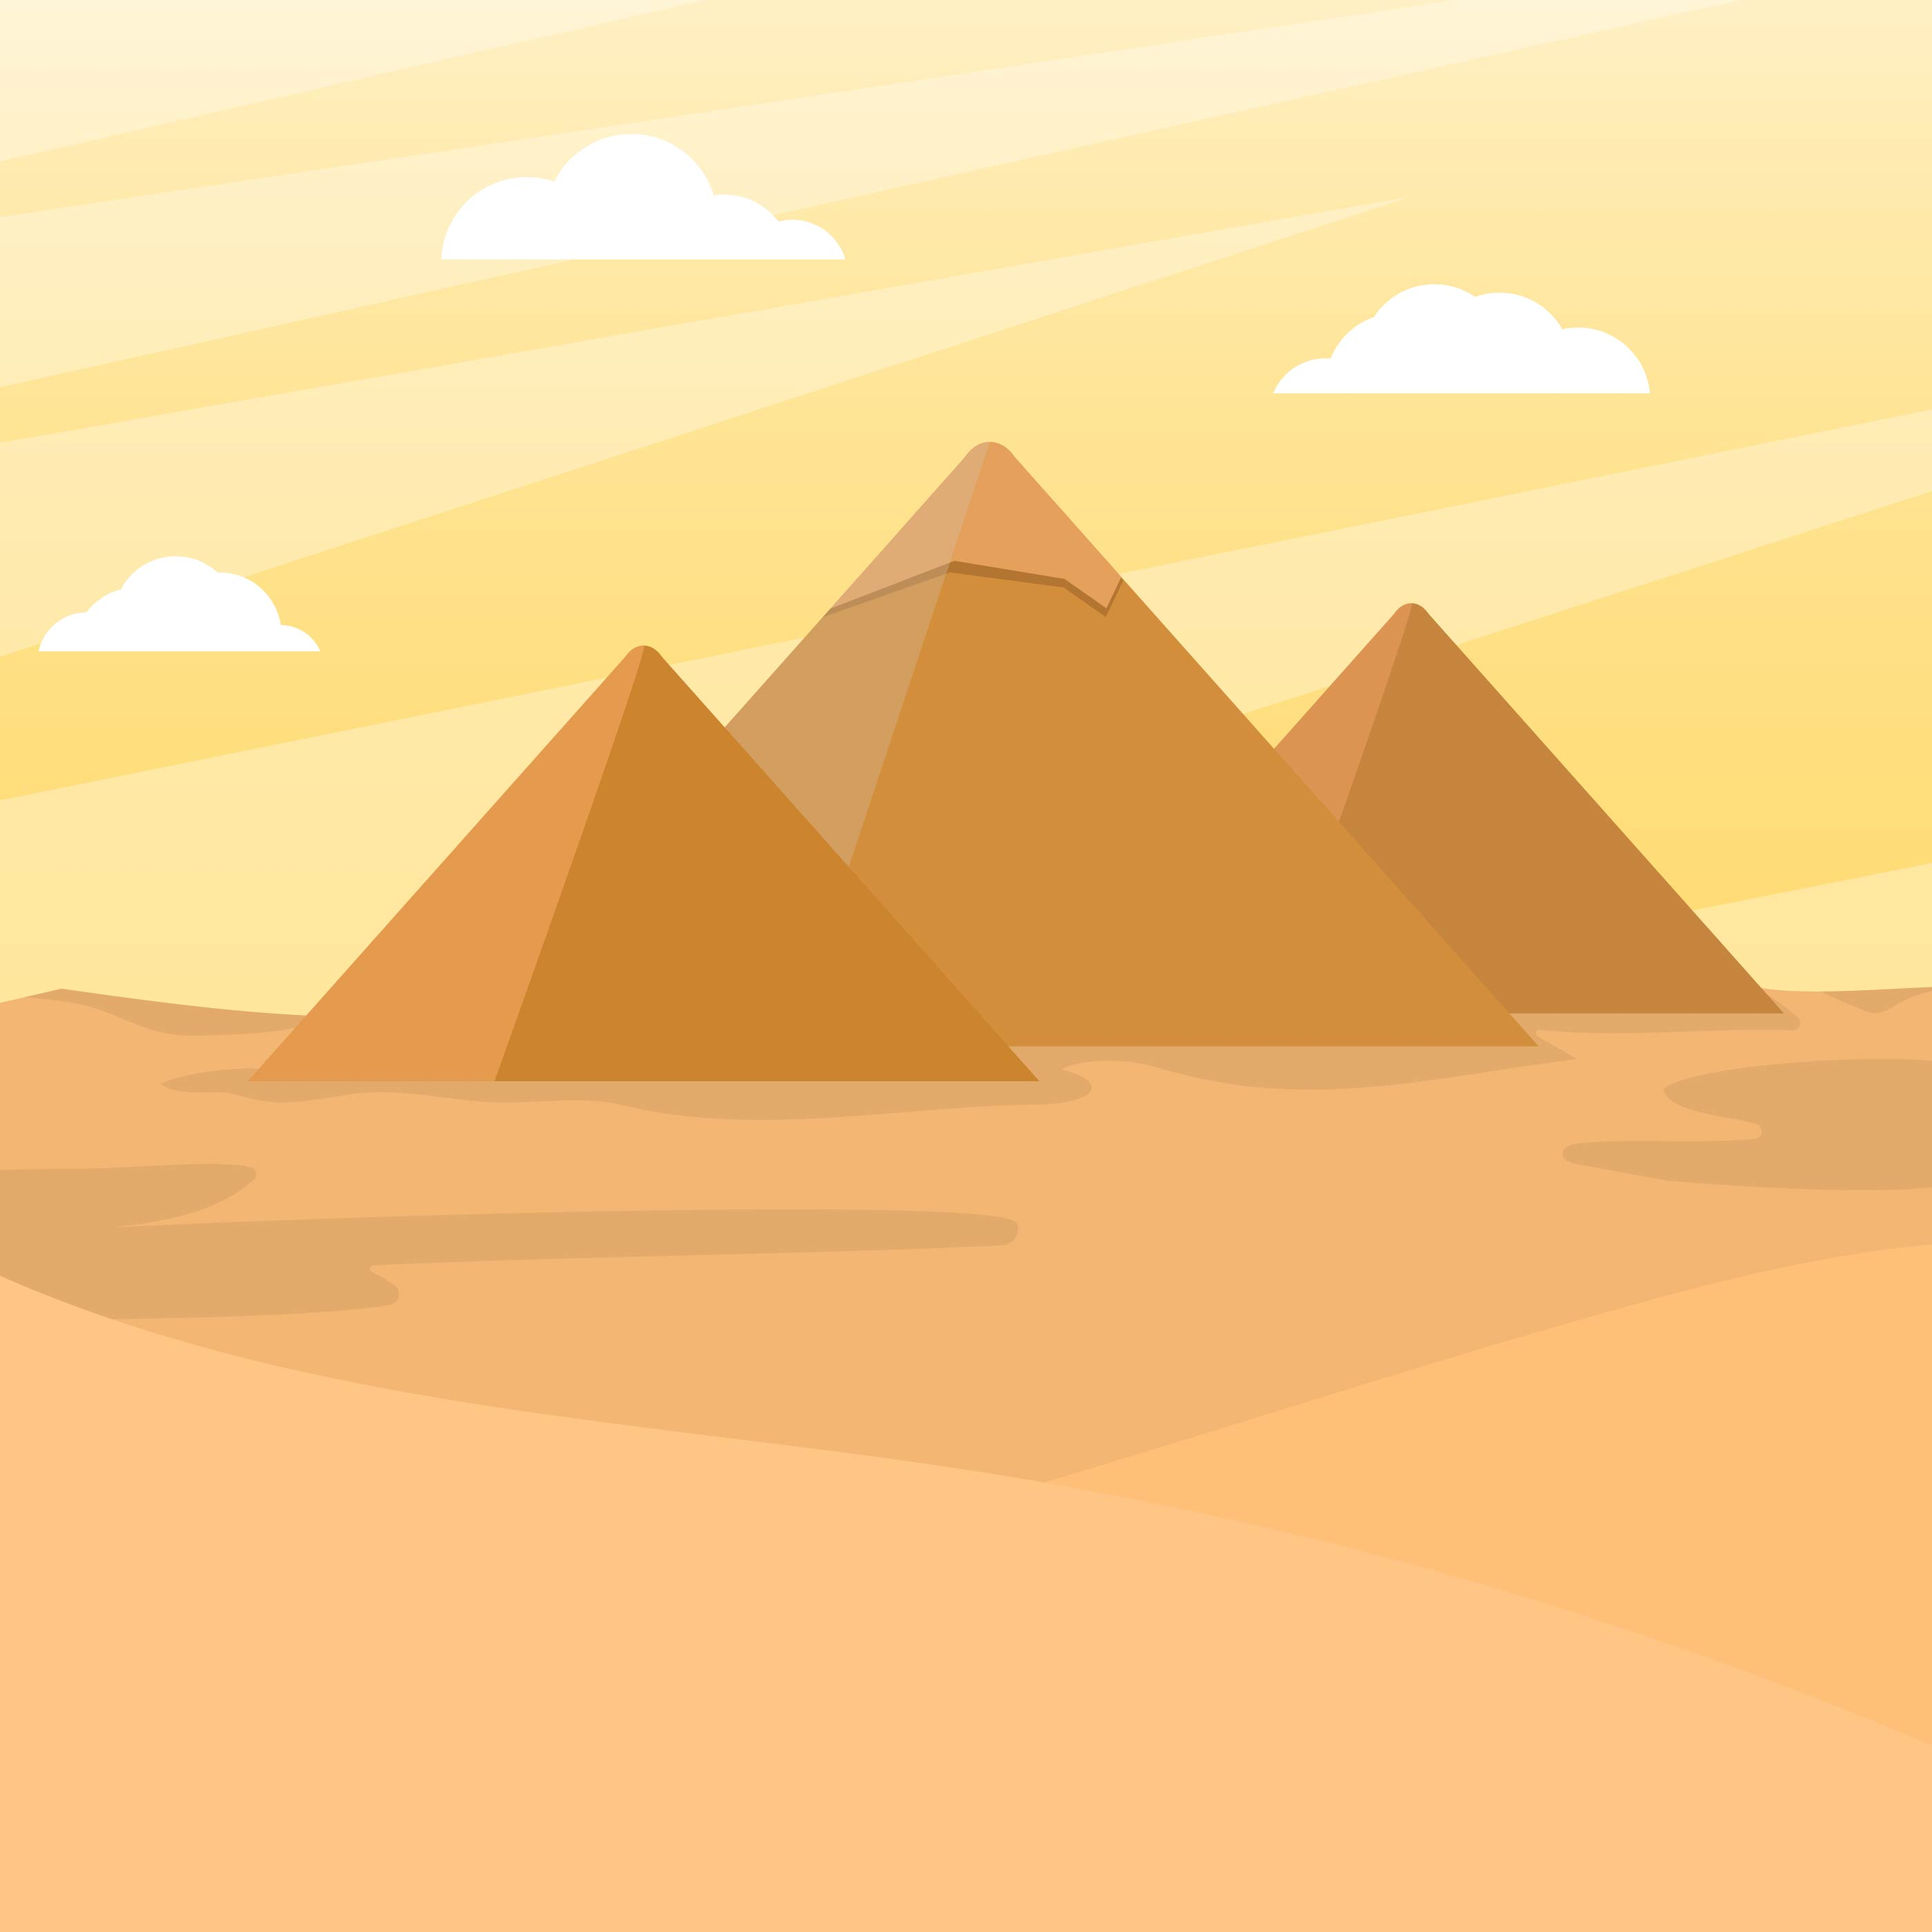 Flat Pyramids Vector Illustration